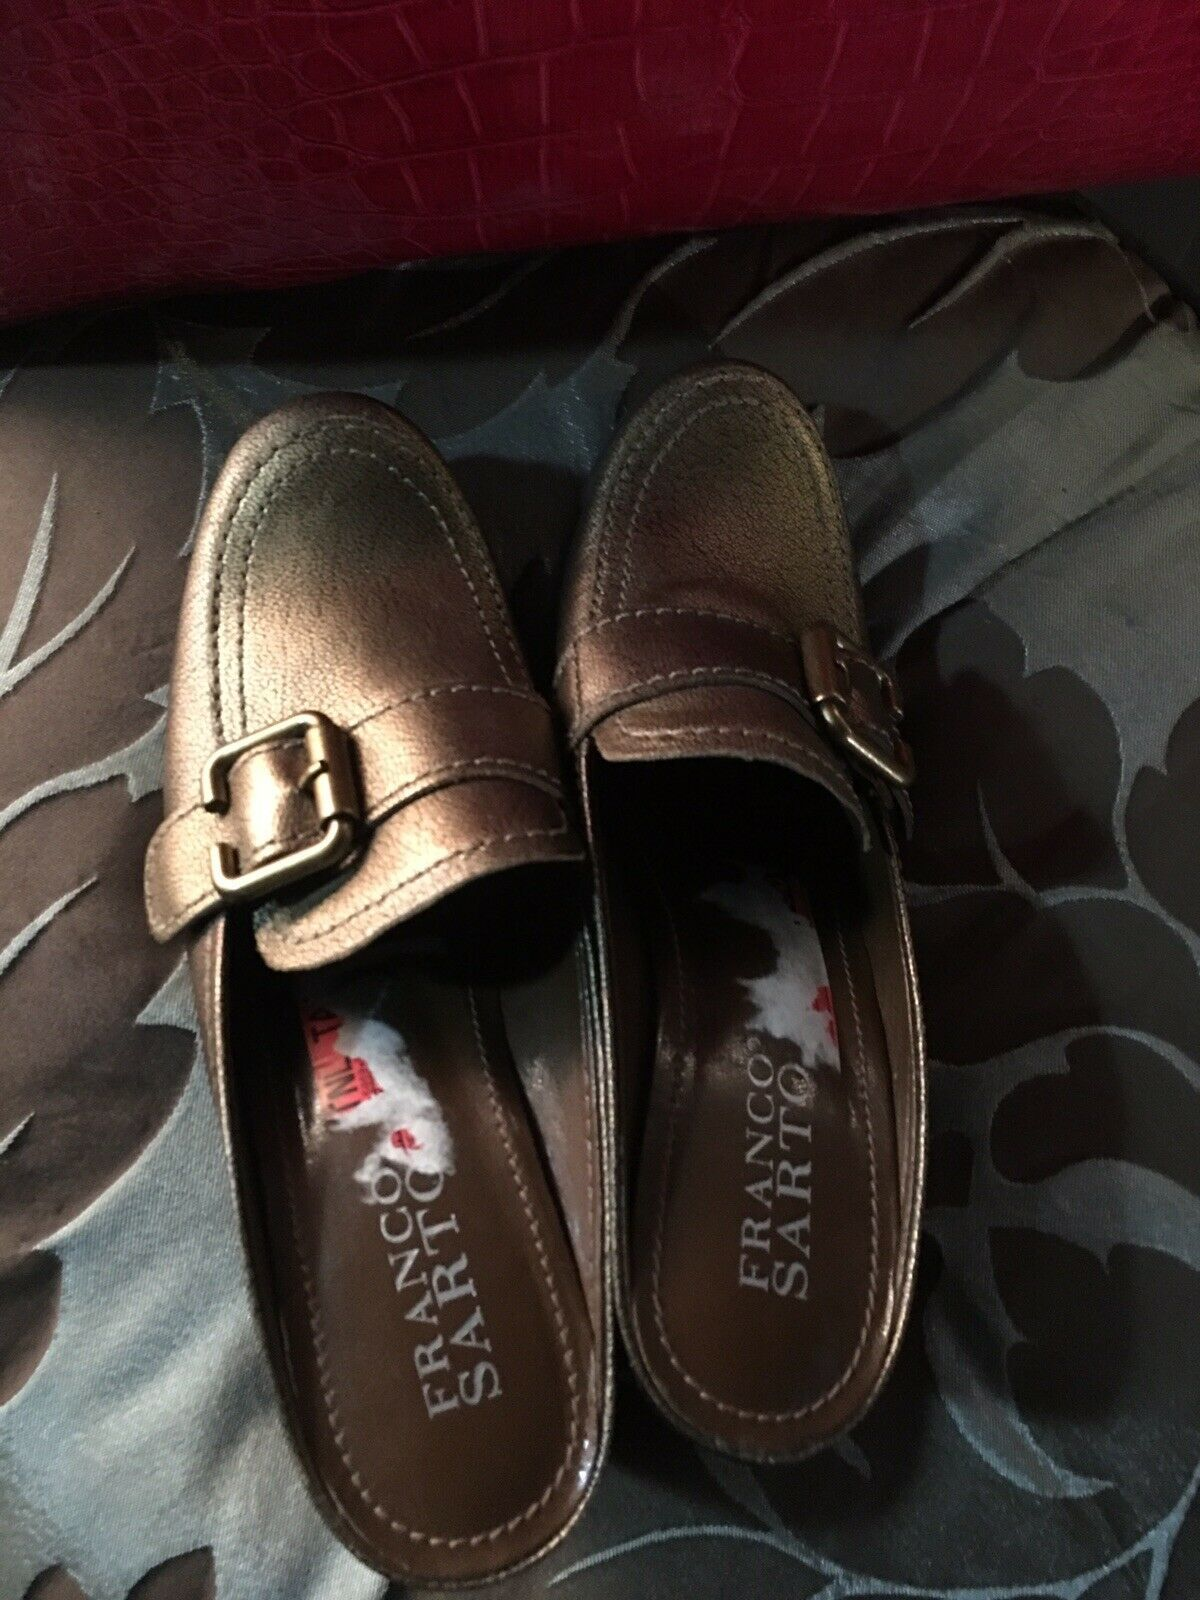 WOMENS FRANCO SARTO BROWN LEATHER SLIDES MULES SHOES - SIZE 5